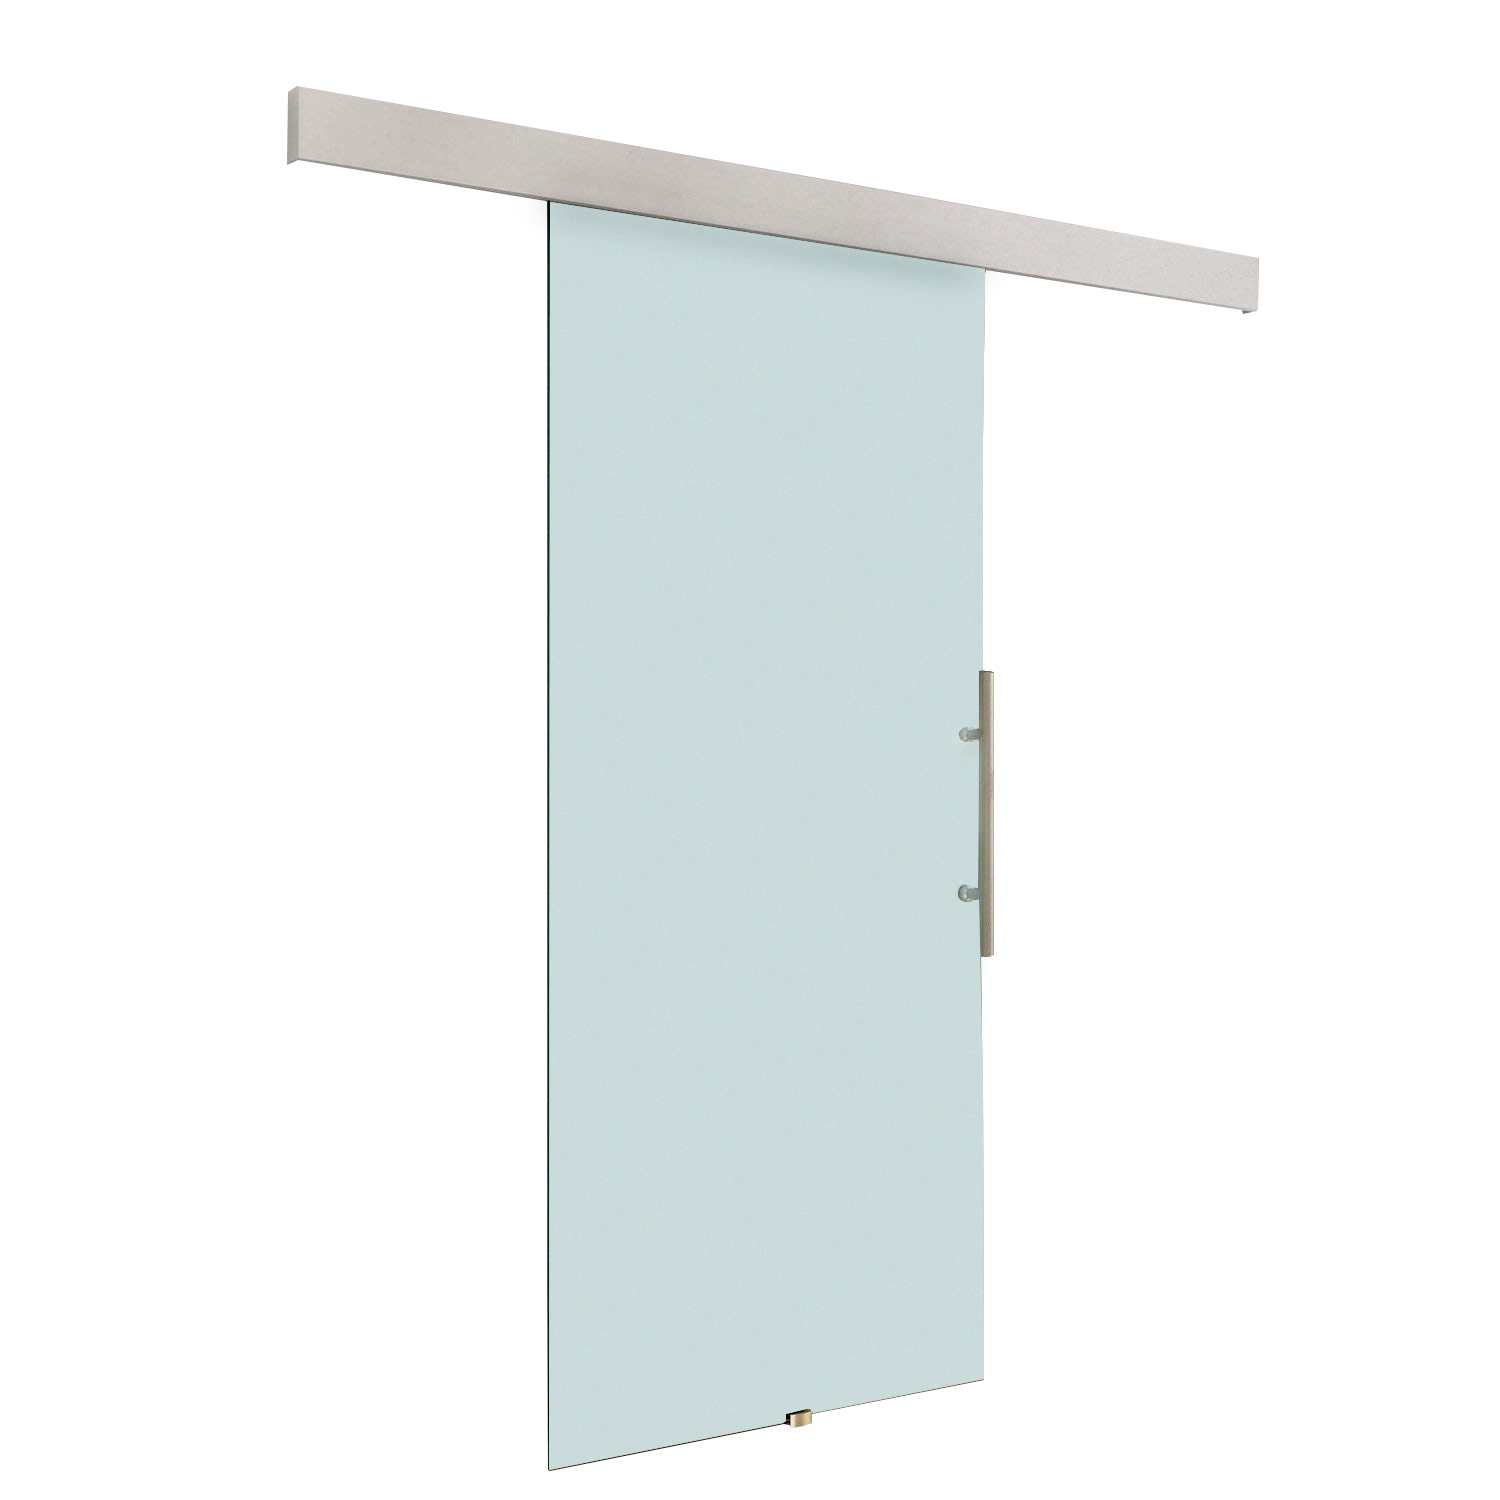 HOMCOM Sliding Door Interior Frosted Glass With Tracks And Handle For Bathroom Kitchen Study 205x77.5x0.8 Cm